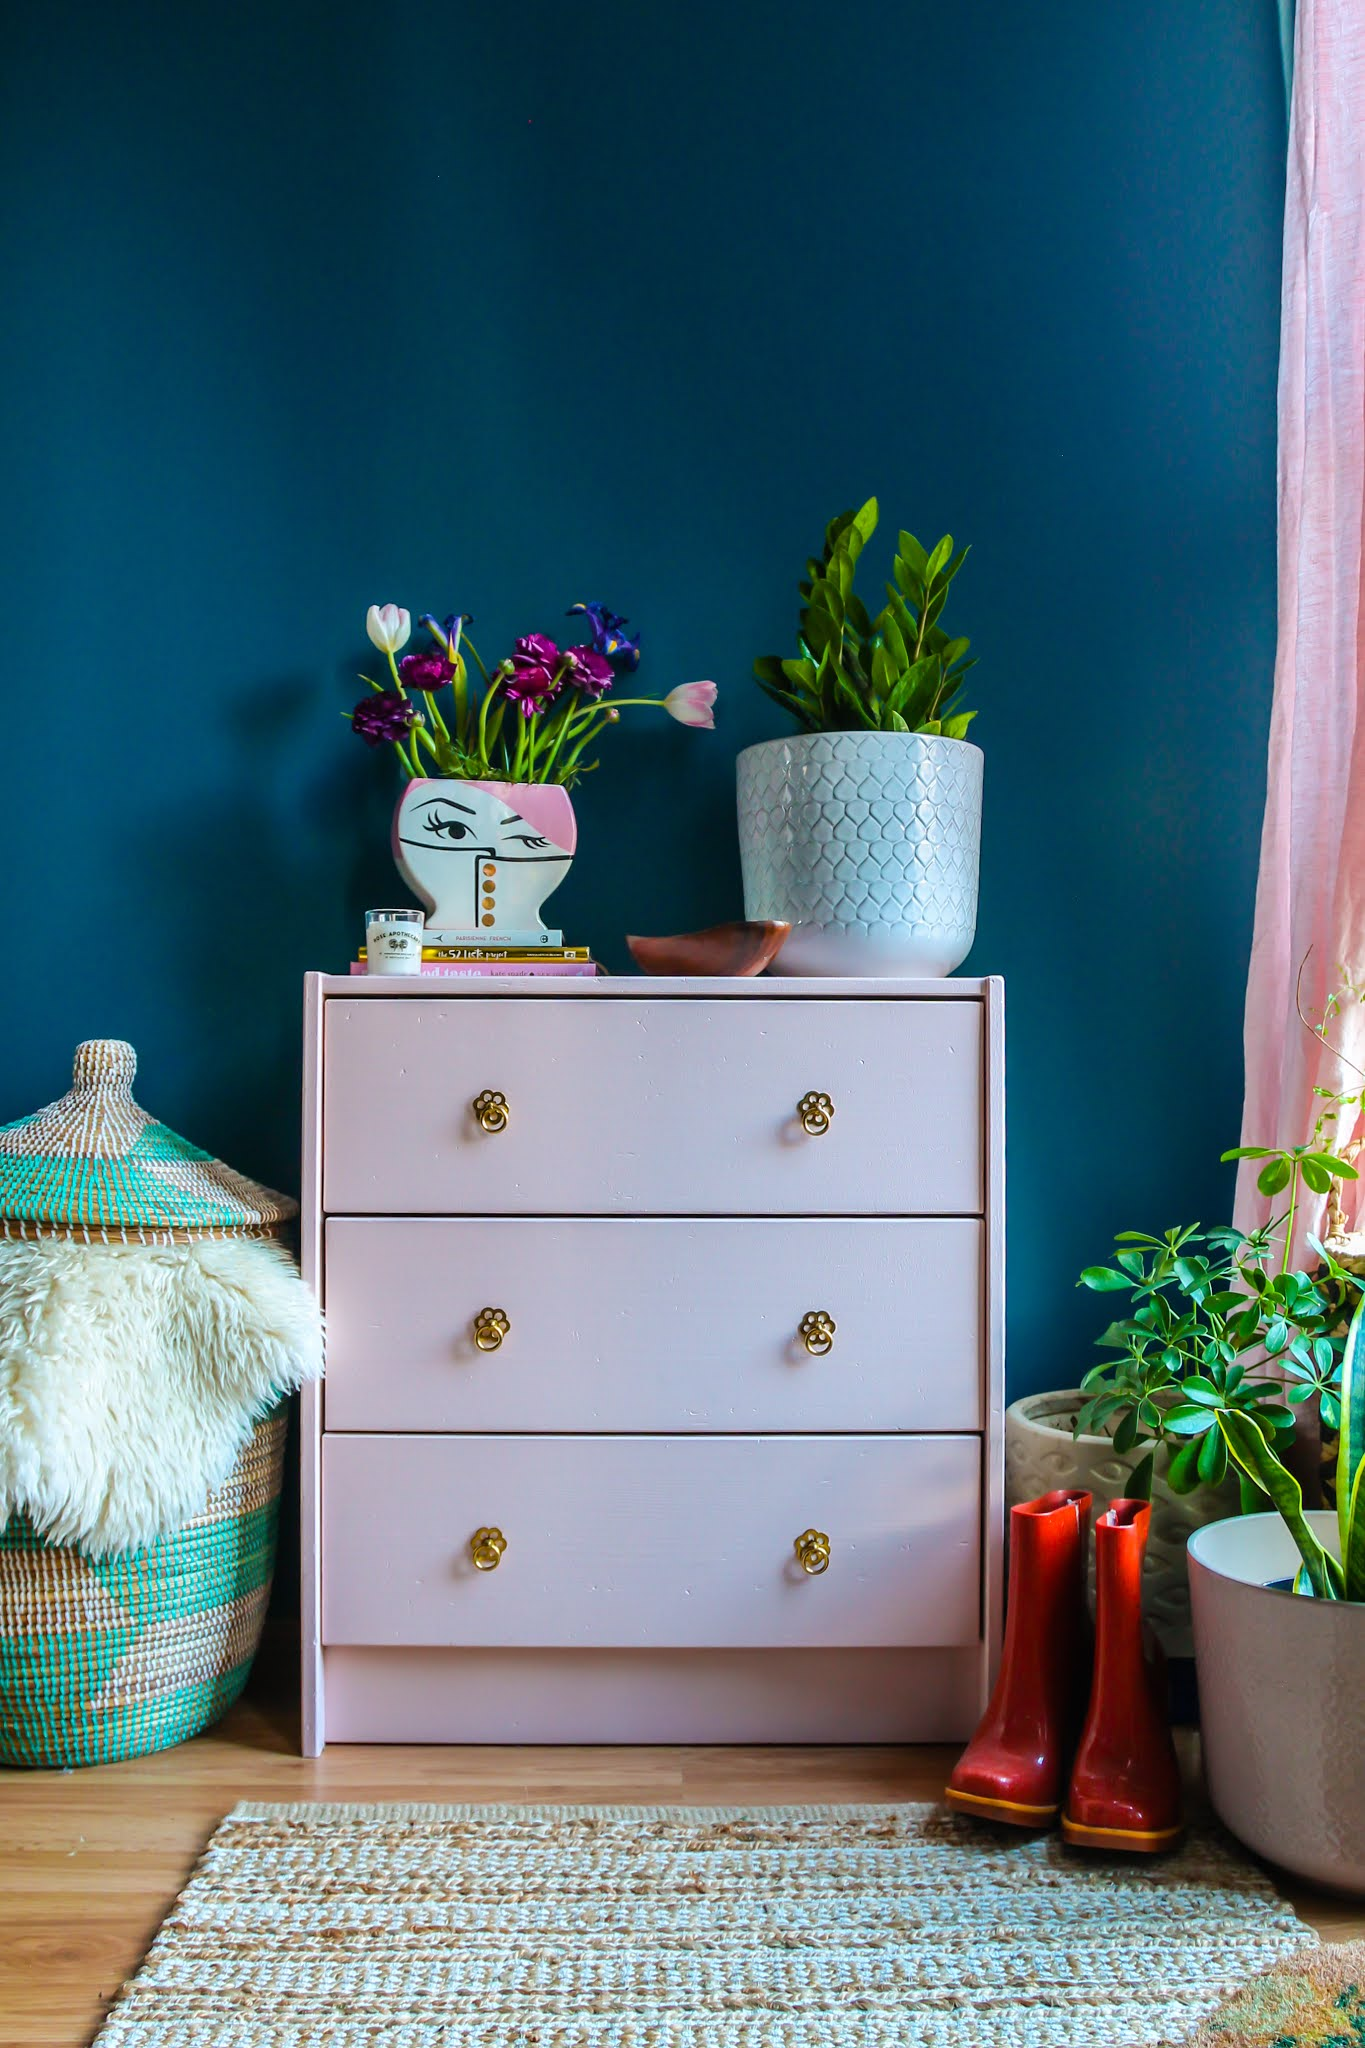 pink and blue decor // ikea Rast dresser hack // diy ikea Rast dresser // pink ikea Rast dresser // ikea hacks // blue and pink bedroom // colorful homes // colorful home inspo